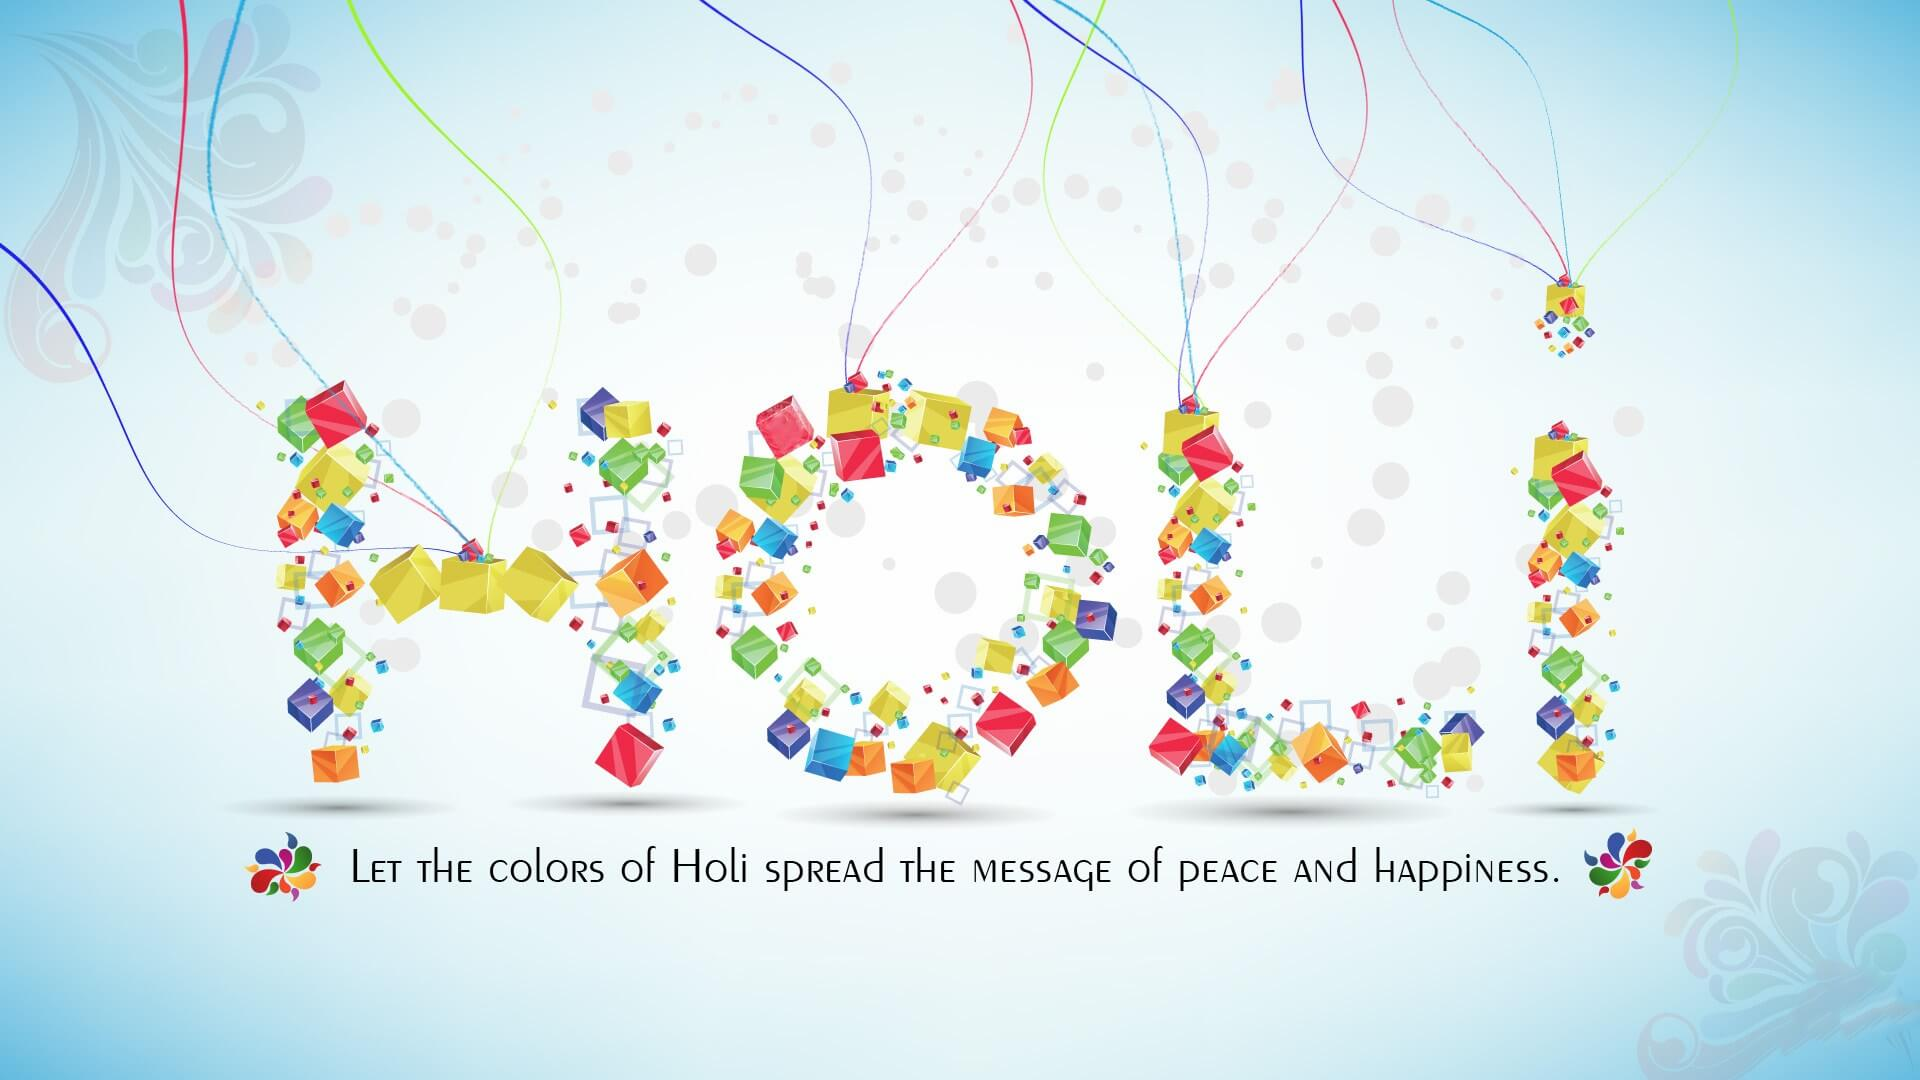 happy holi greeting cards for friends, family